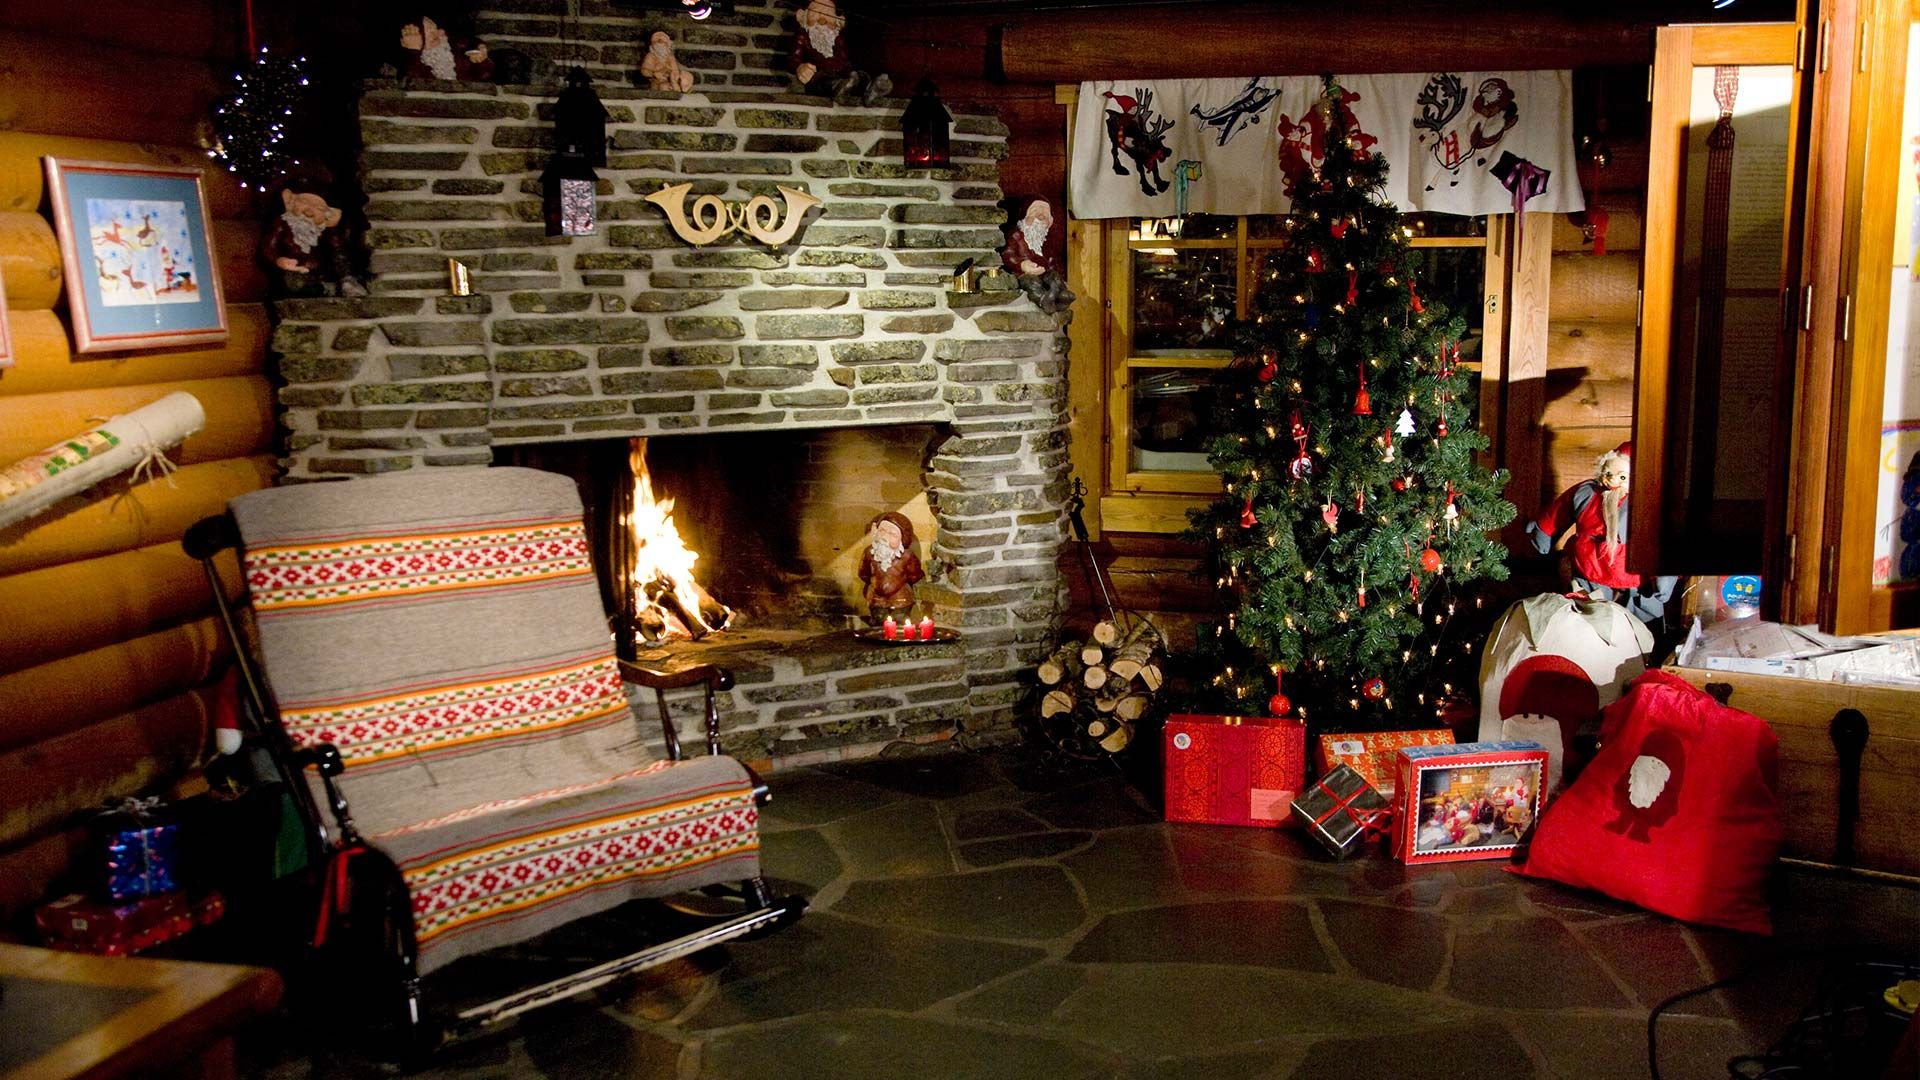 Christmas Fireplace Comfort download free wallpapers for pc in hd